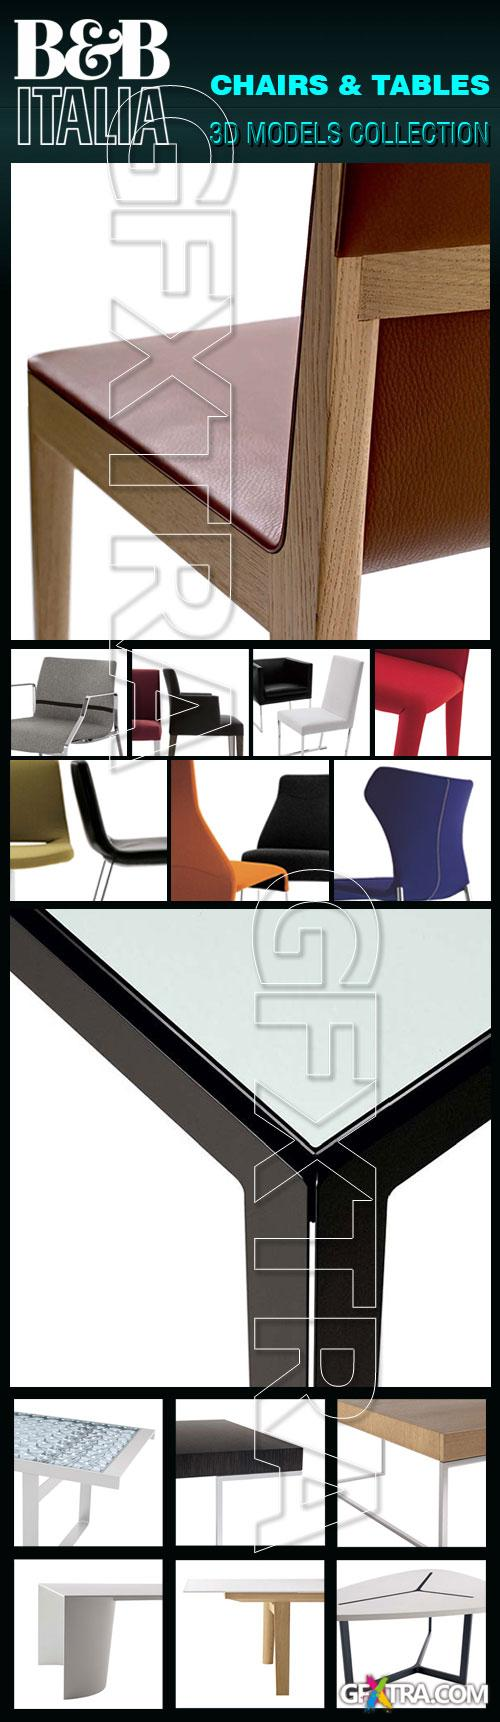 B&B Italia Furnitures - Tables, Chairs and Accessories 3D Model Collection